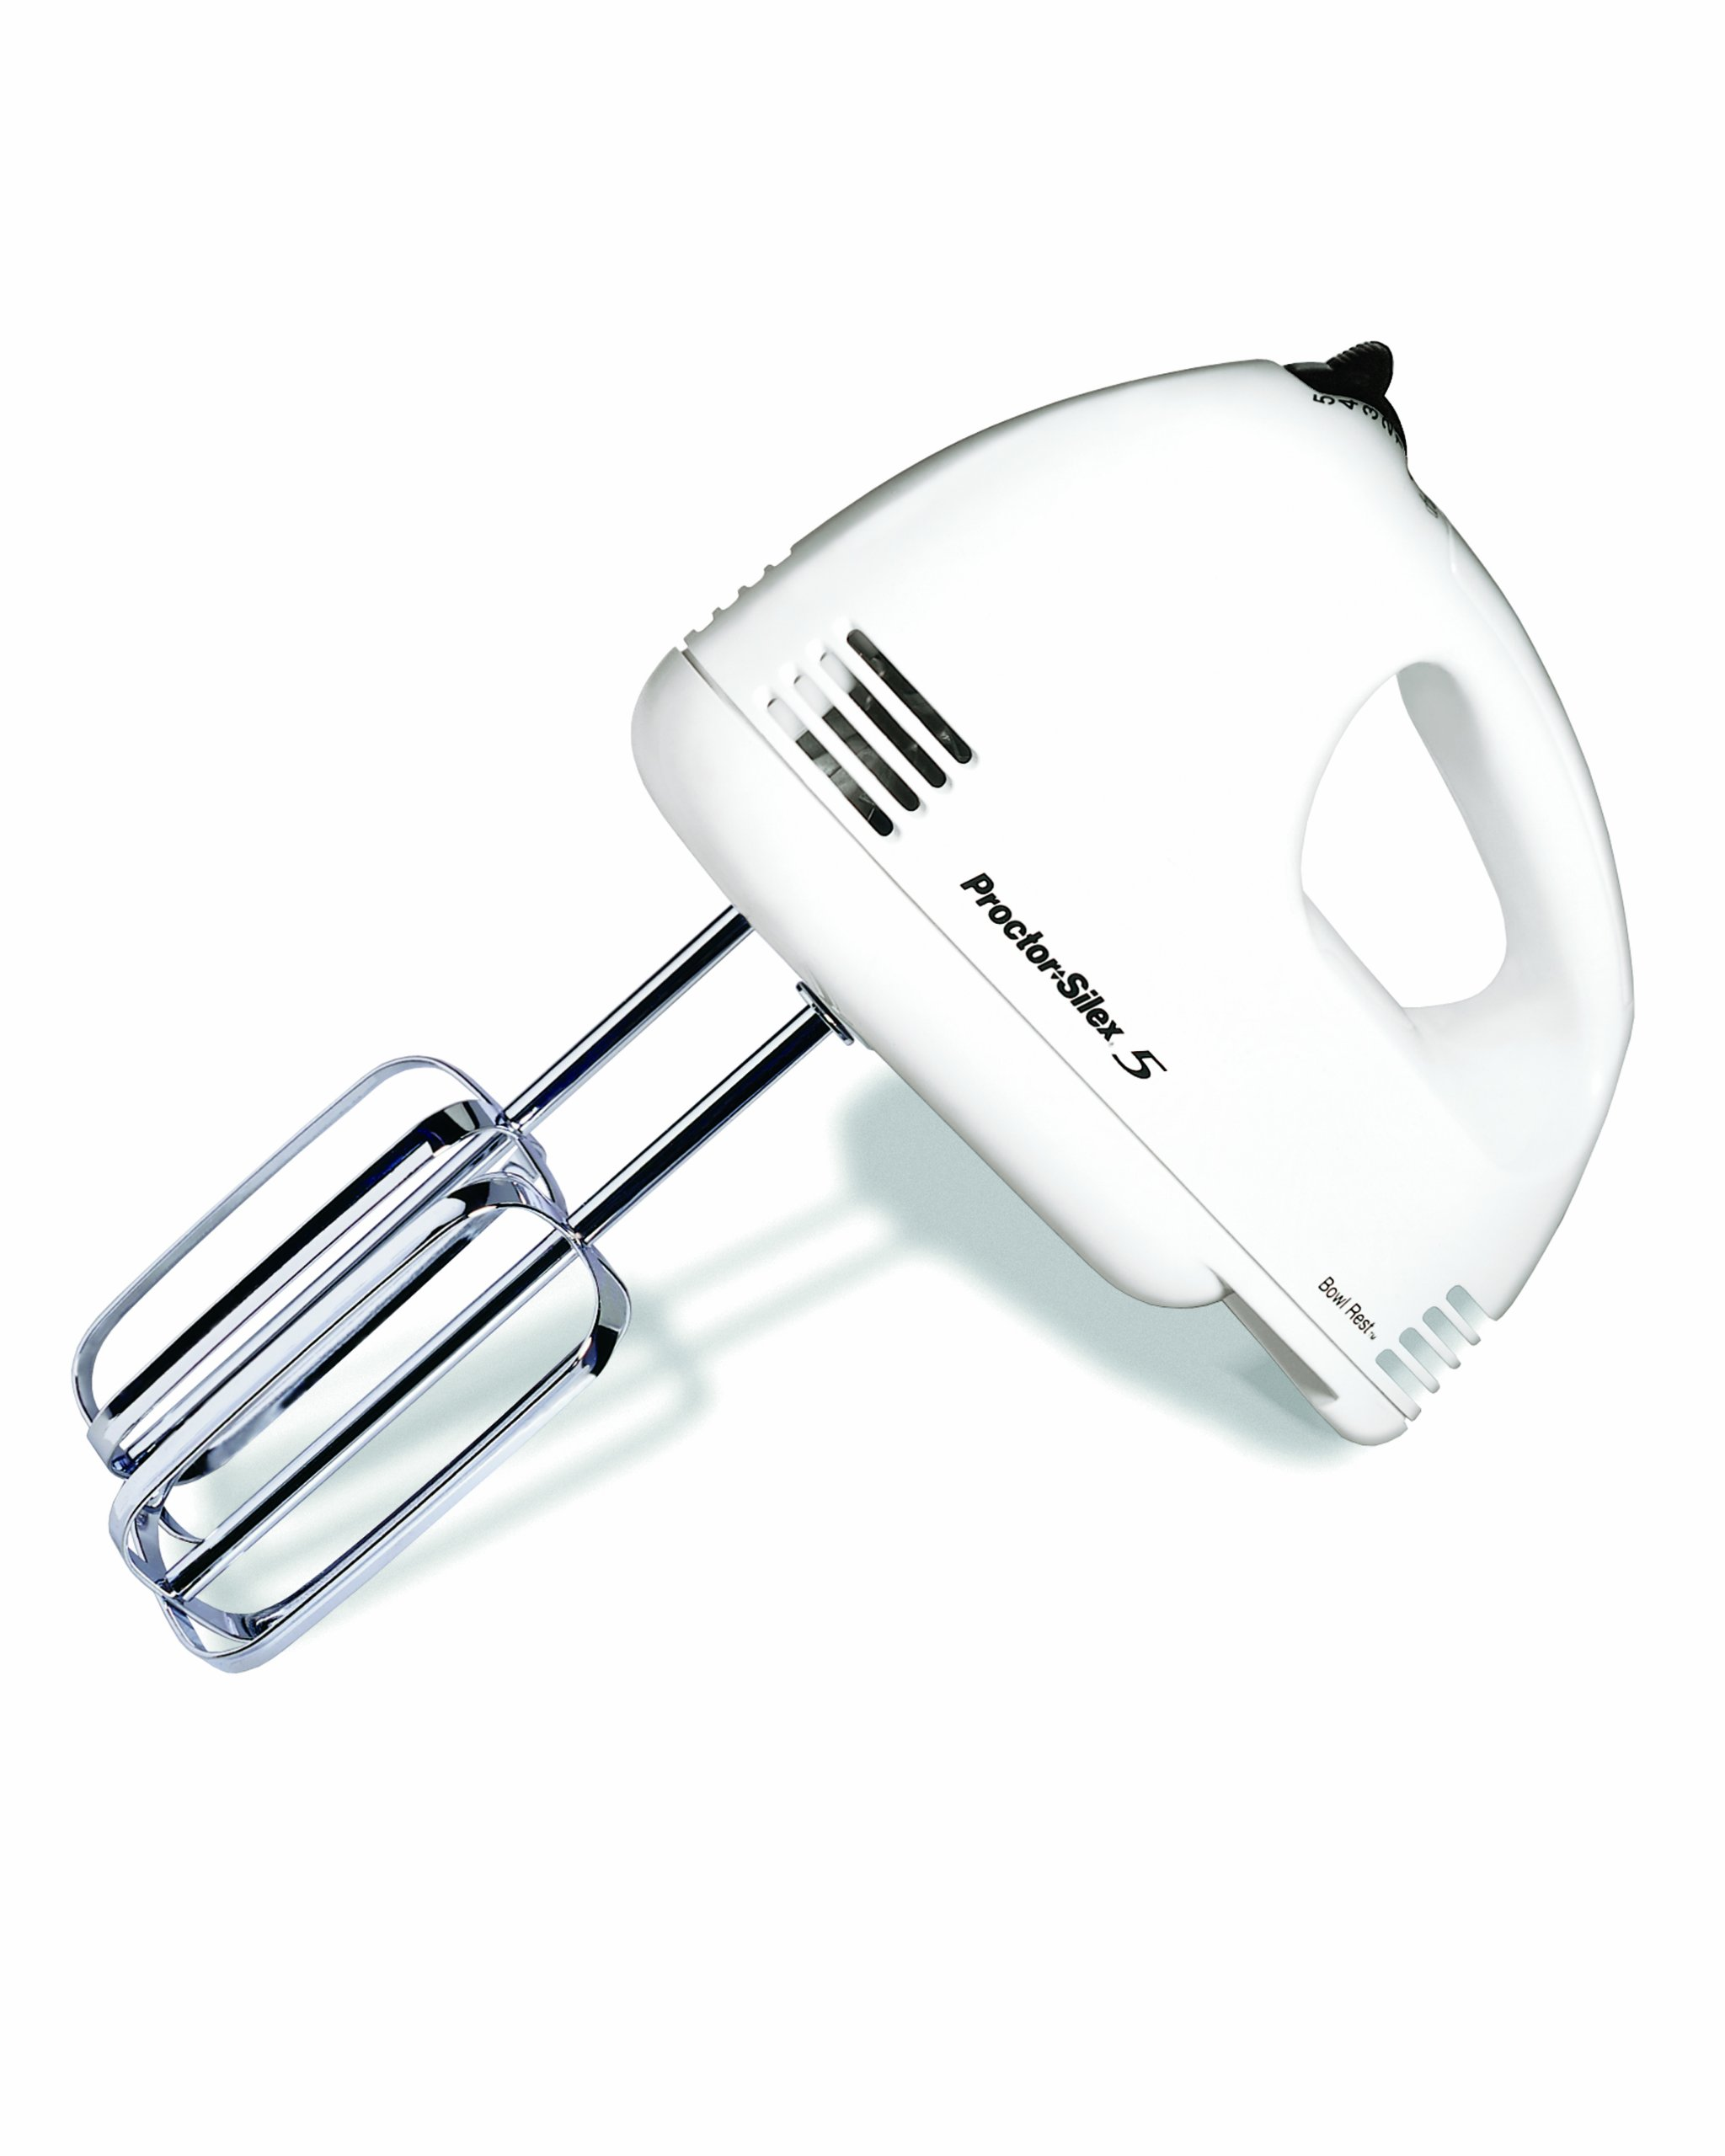 Proctor Silex 62515RY 5-Speed Easy Mix Hand Mixer, White by Proctor Silex